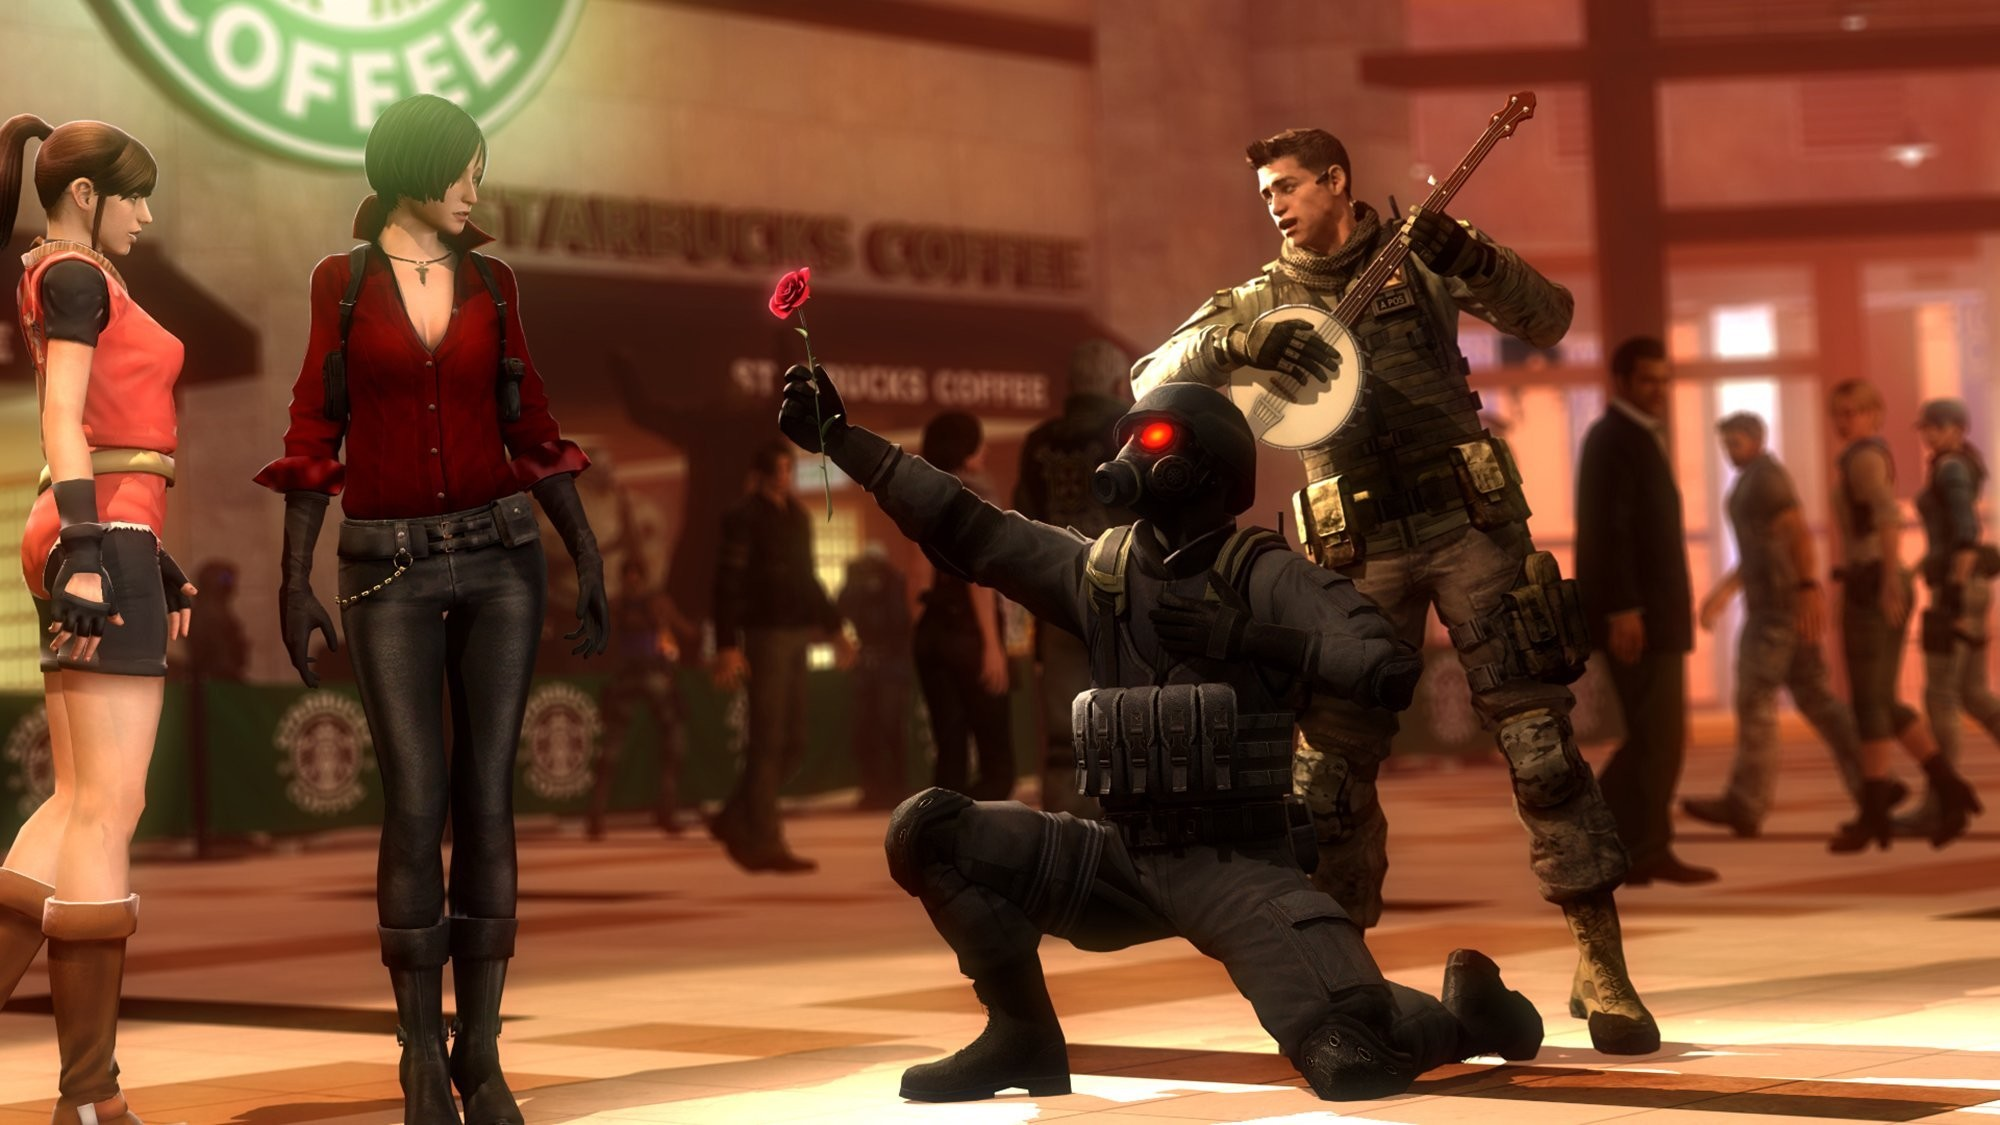 2000x1125 resident evil hunk nikolai zinoviev piers nivans chris redfield guitars  love flower ada wong rendering